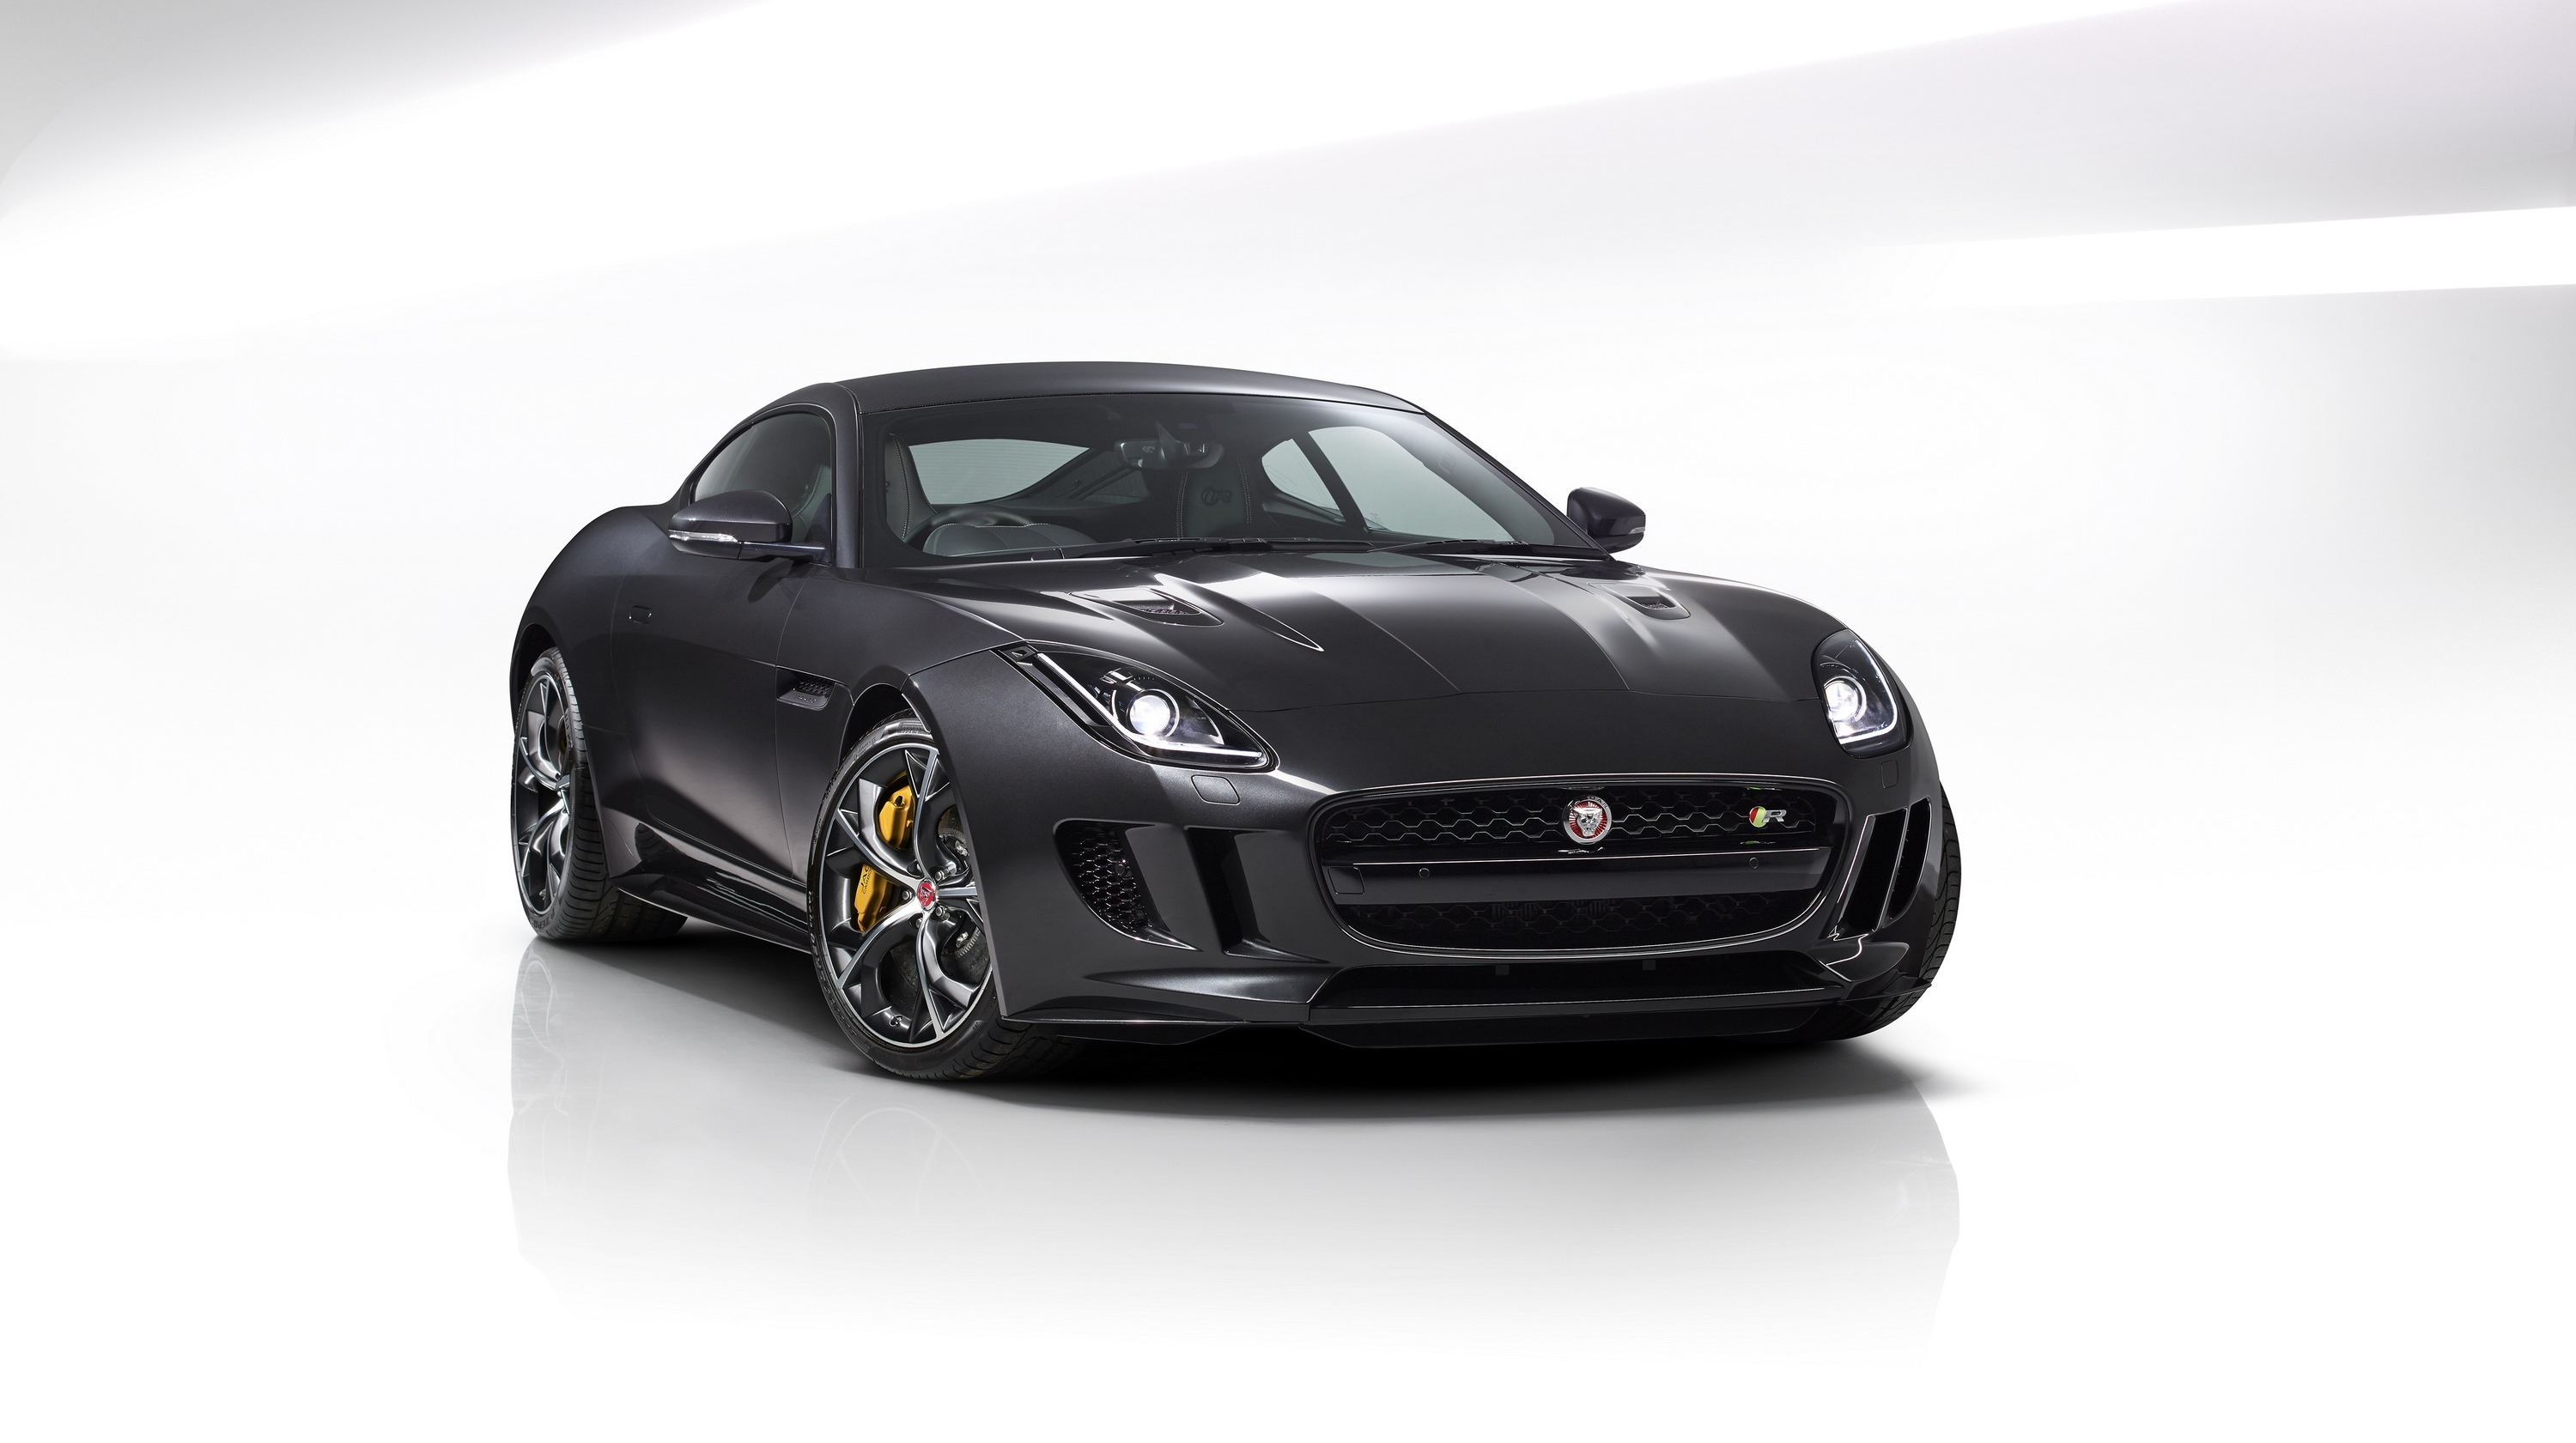 all reviews xf top awd first detail wheel the worth extra car review prevnext jaguar drive auto gear r sport